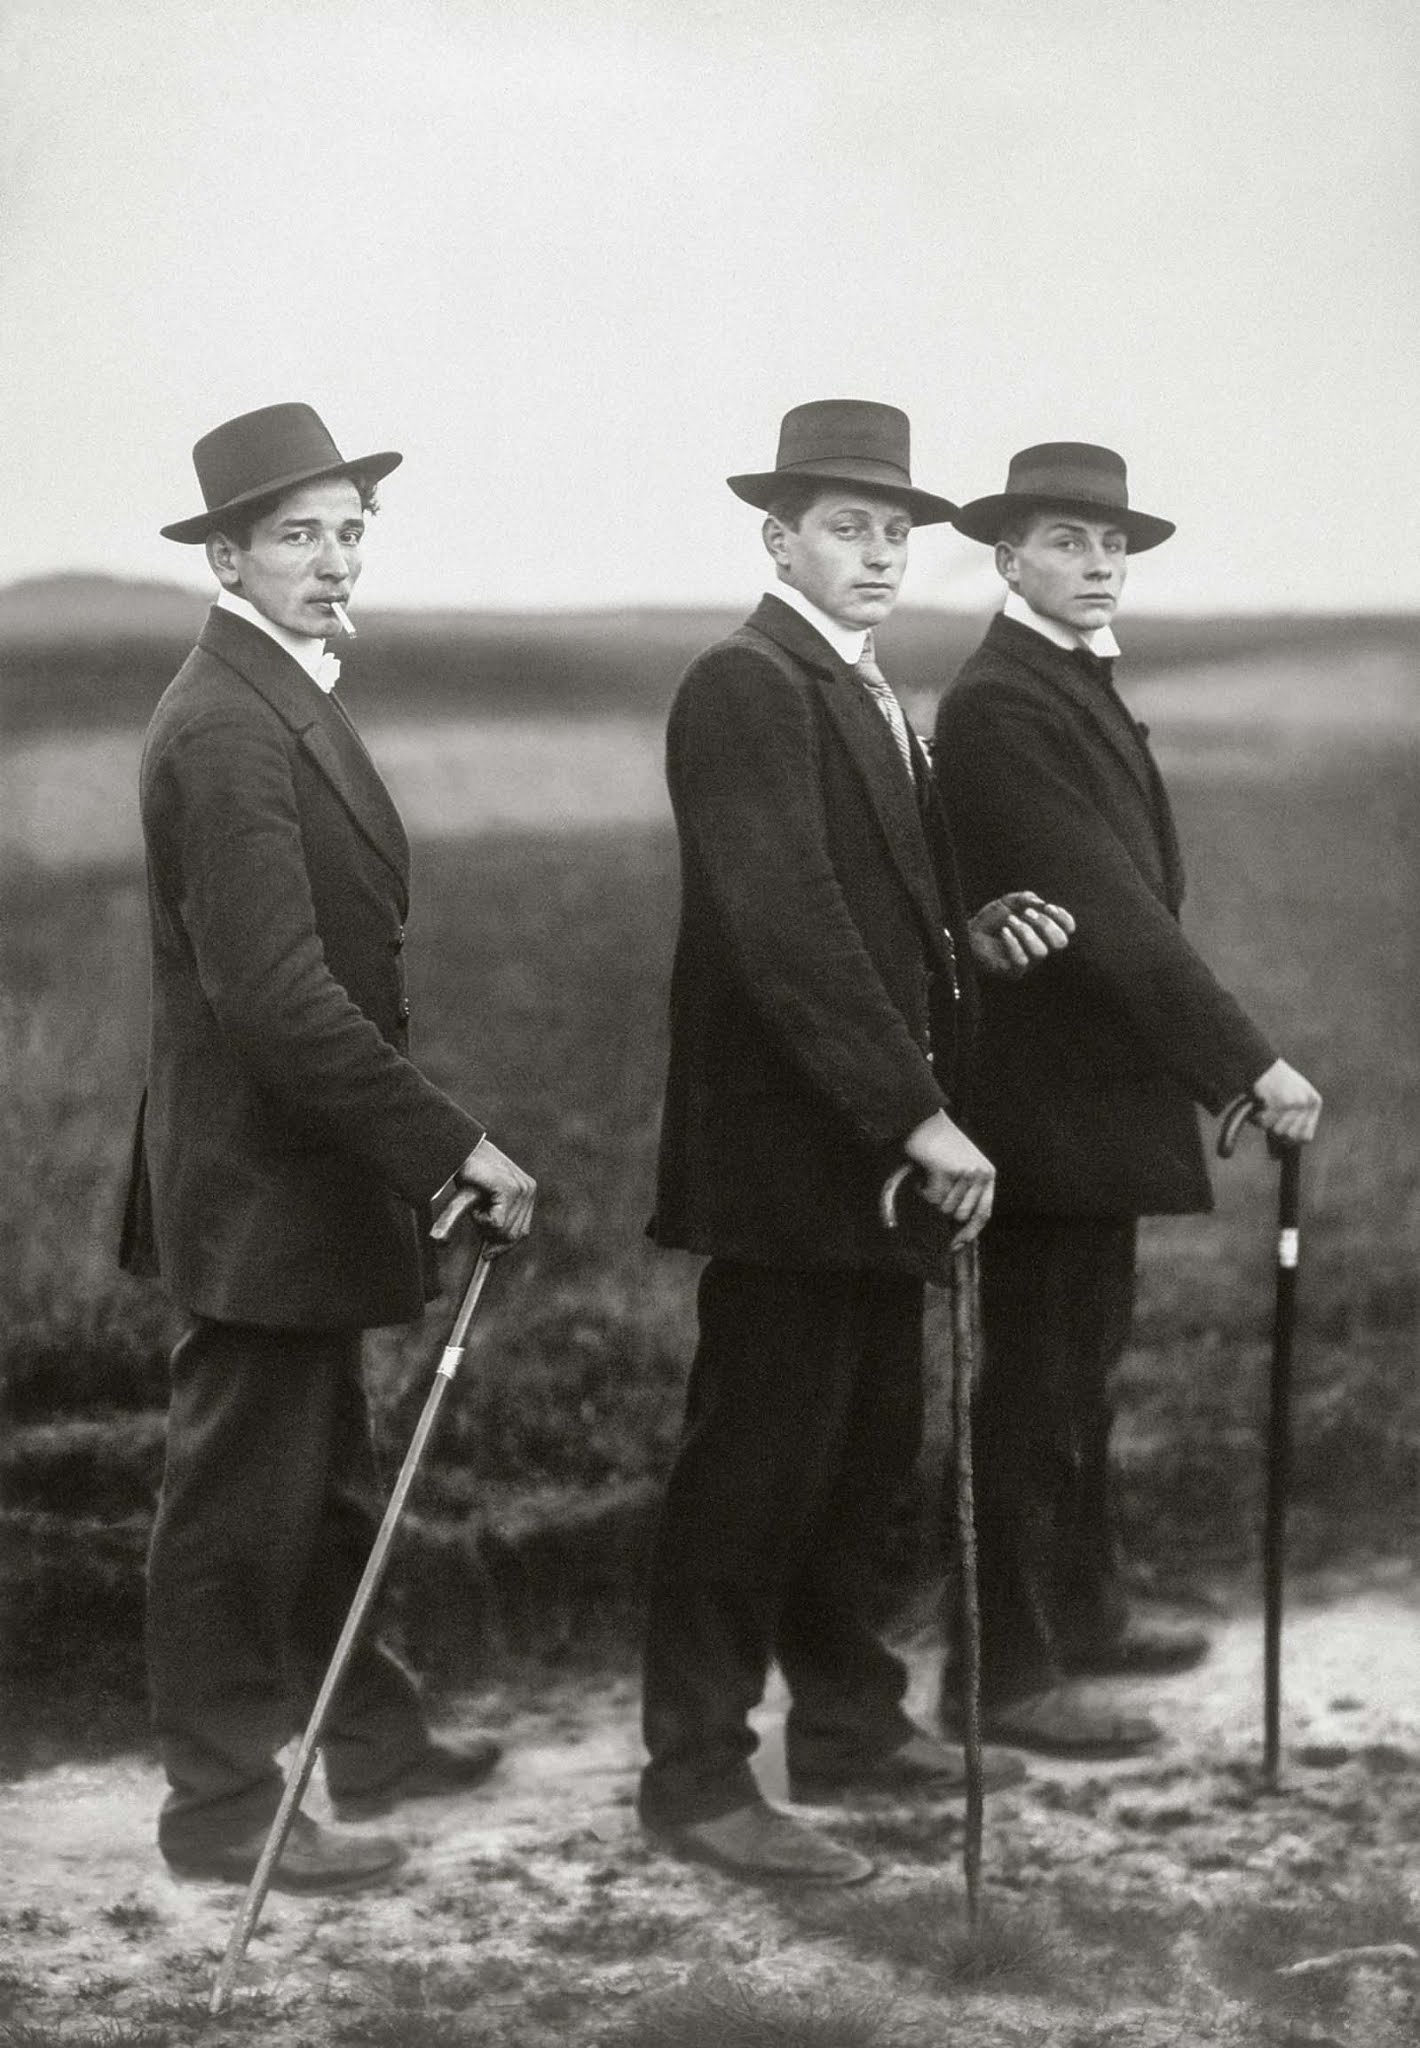 Young Farmers, 1914 - Photographer: August Sander.